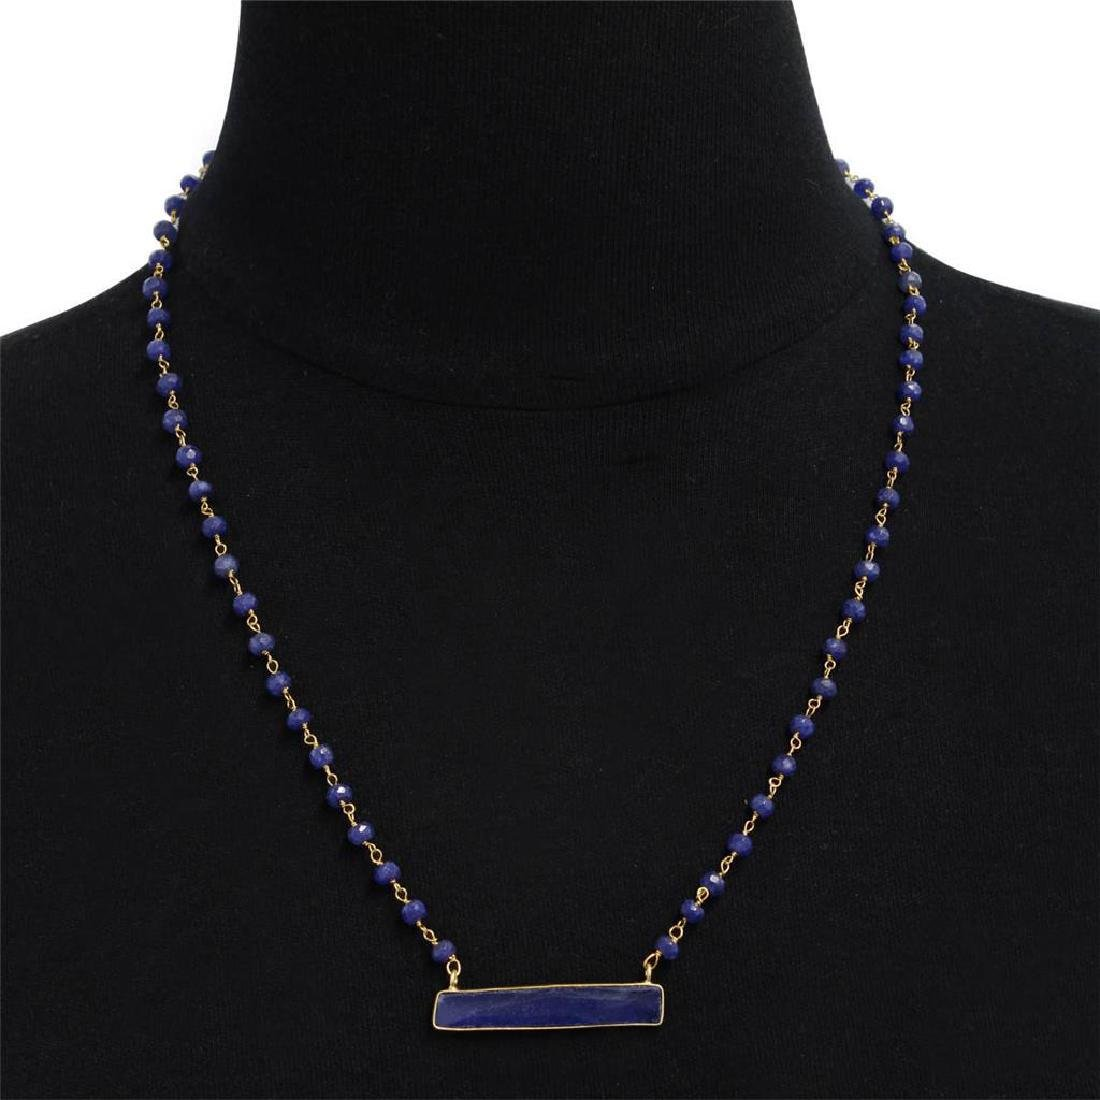 18K Gold Sterling Silver Sapphire Necklace, 58ctw